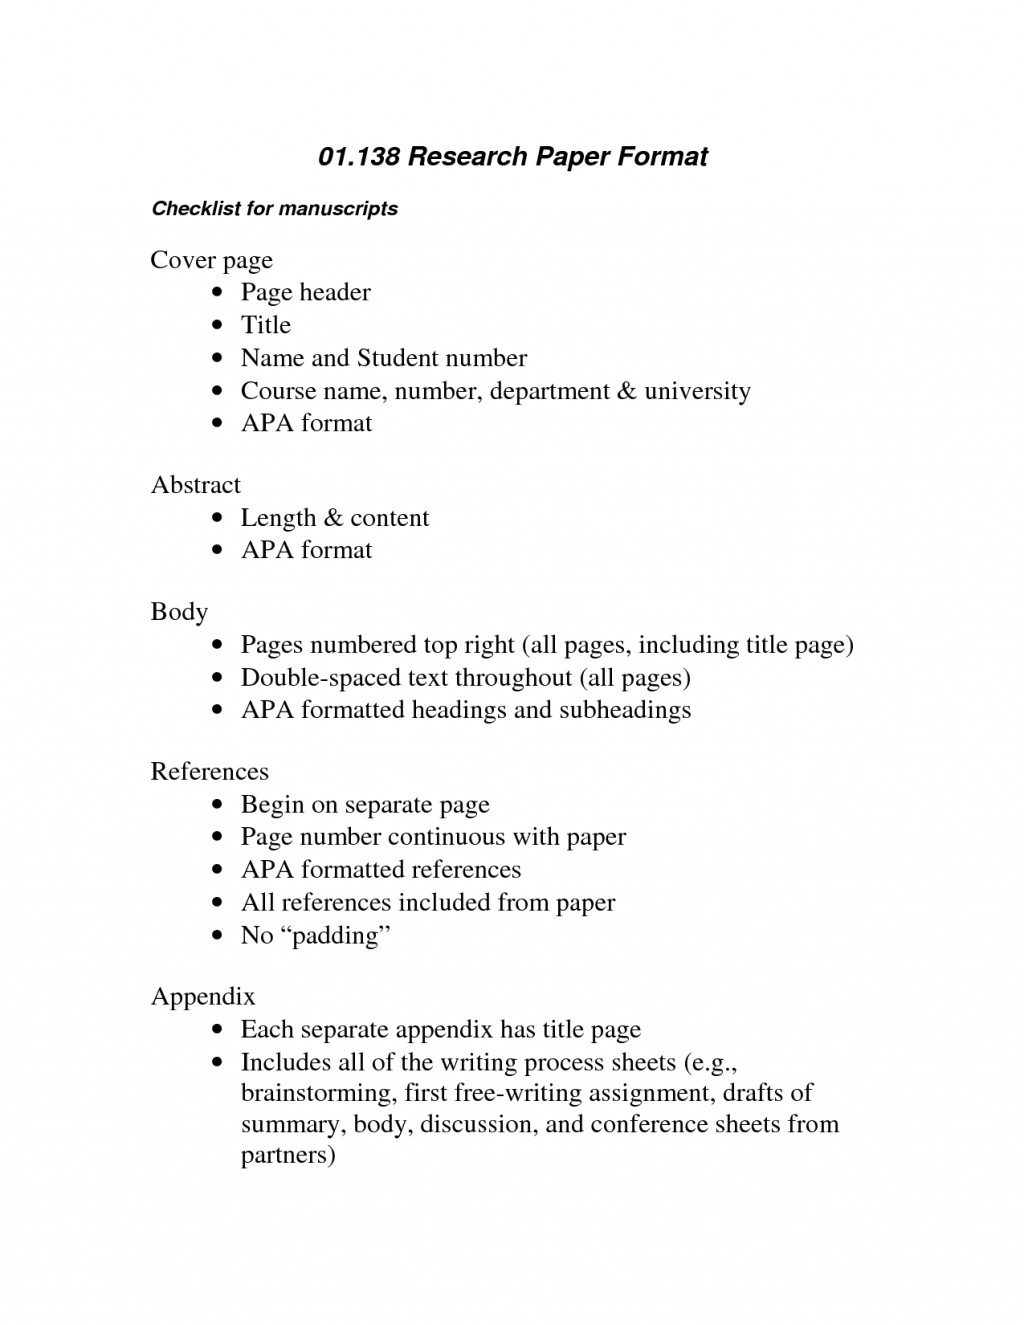 006 Bibliography Research Paper Outline Frightening Large